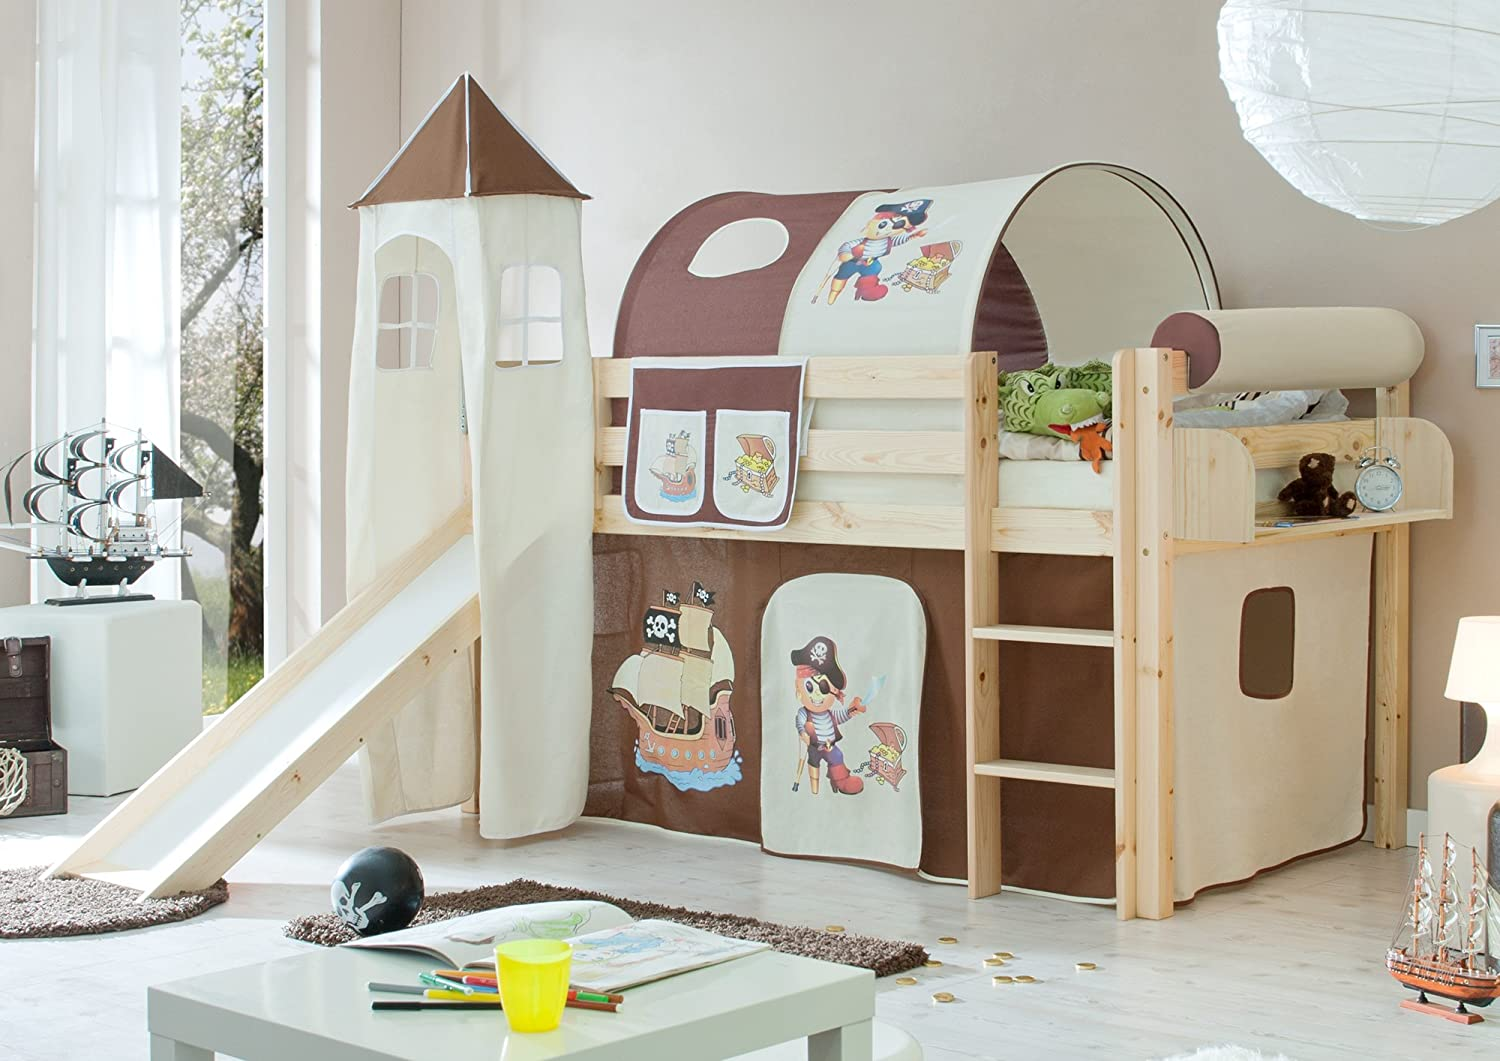 kinderbett mit rutsche hochbett mit rutsche g nstige. Black Bedroom Furniture Sets. Home Design Ideas